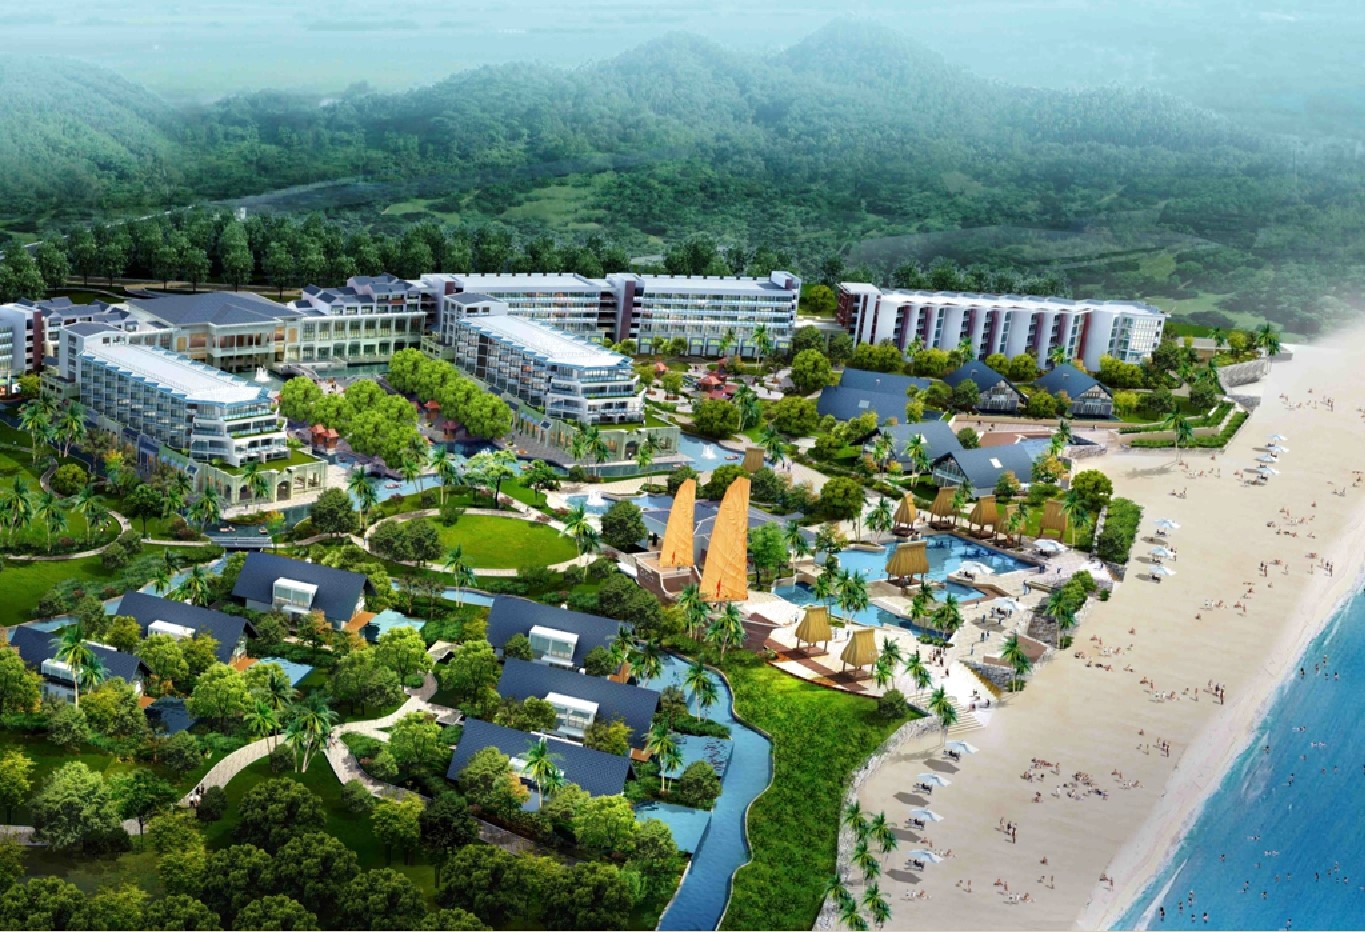 $4-billion South Hoi An resort project in Quang Nam province. Picture: duannewhoiancity